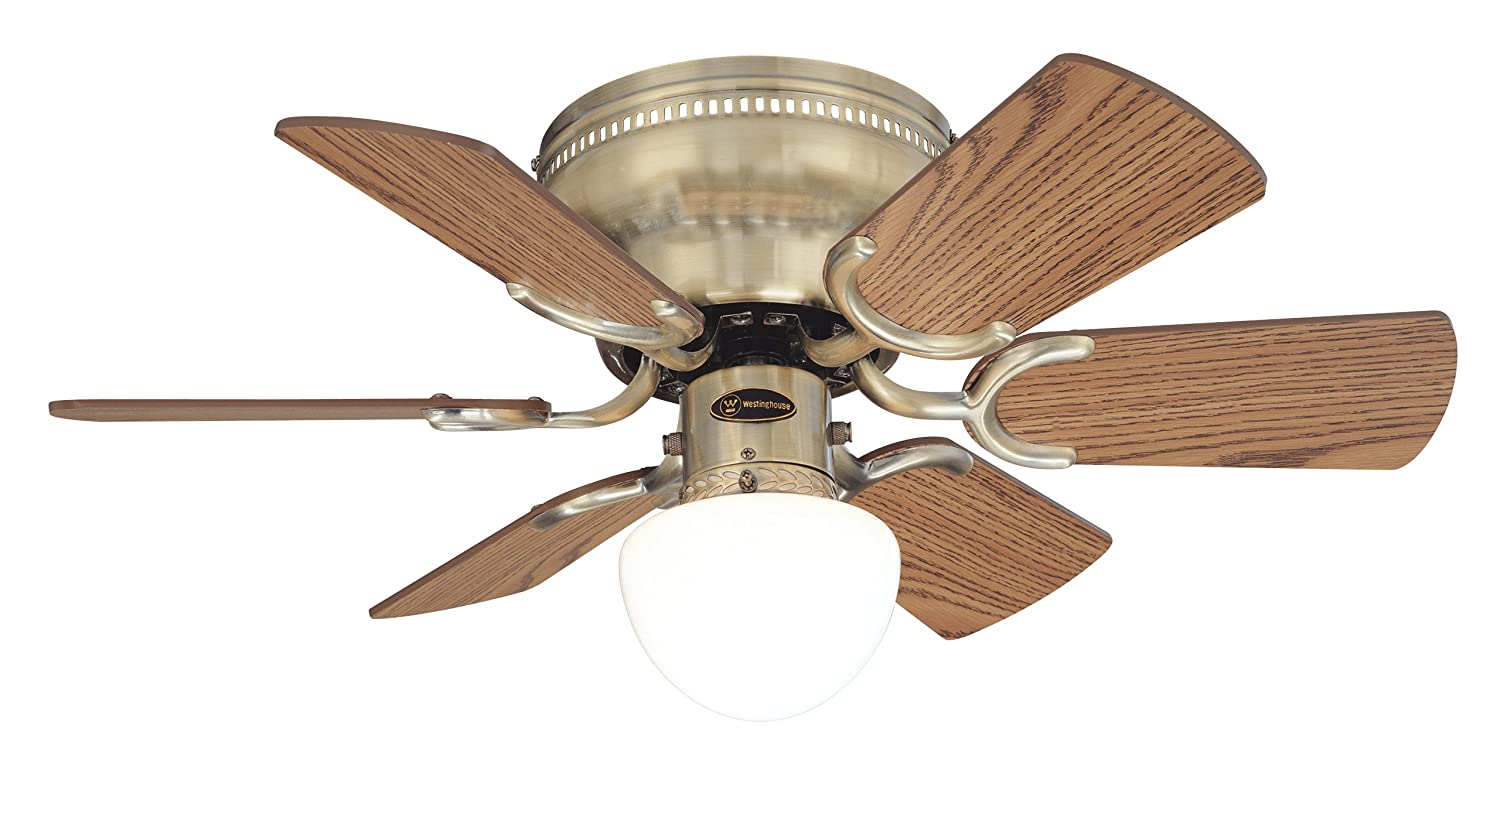 Westinghouse 78603 Petite 6-Blade 30-Inch 3-Speed Hugger-Style Ceiling Fan  with Light, Antique Brass - - Amazon.com